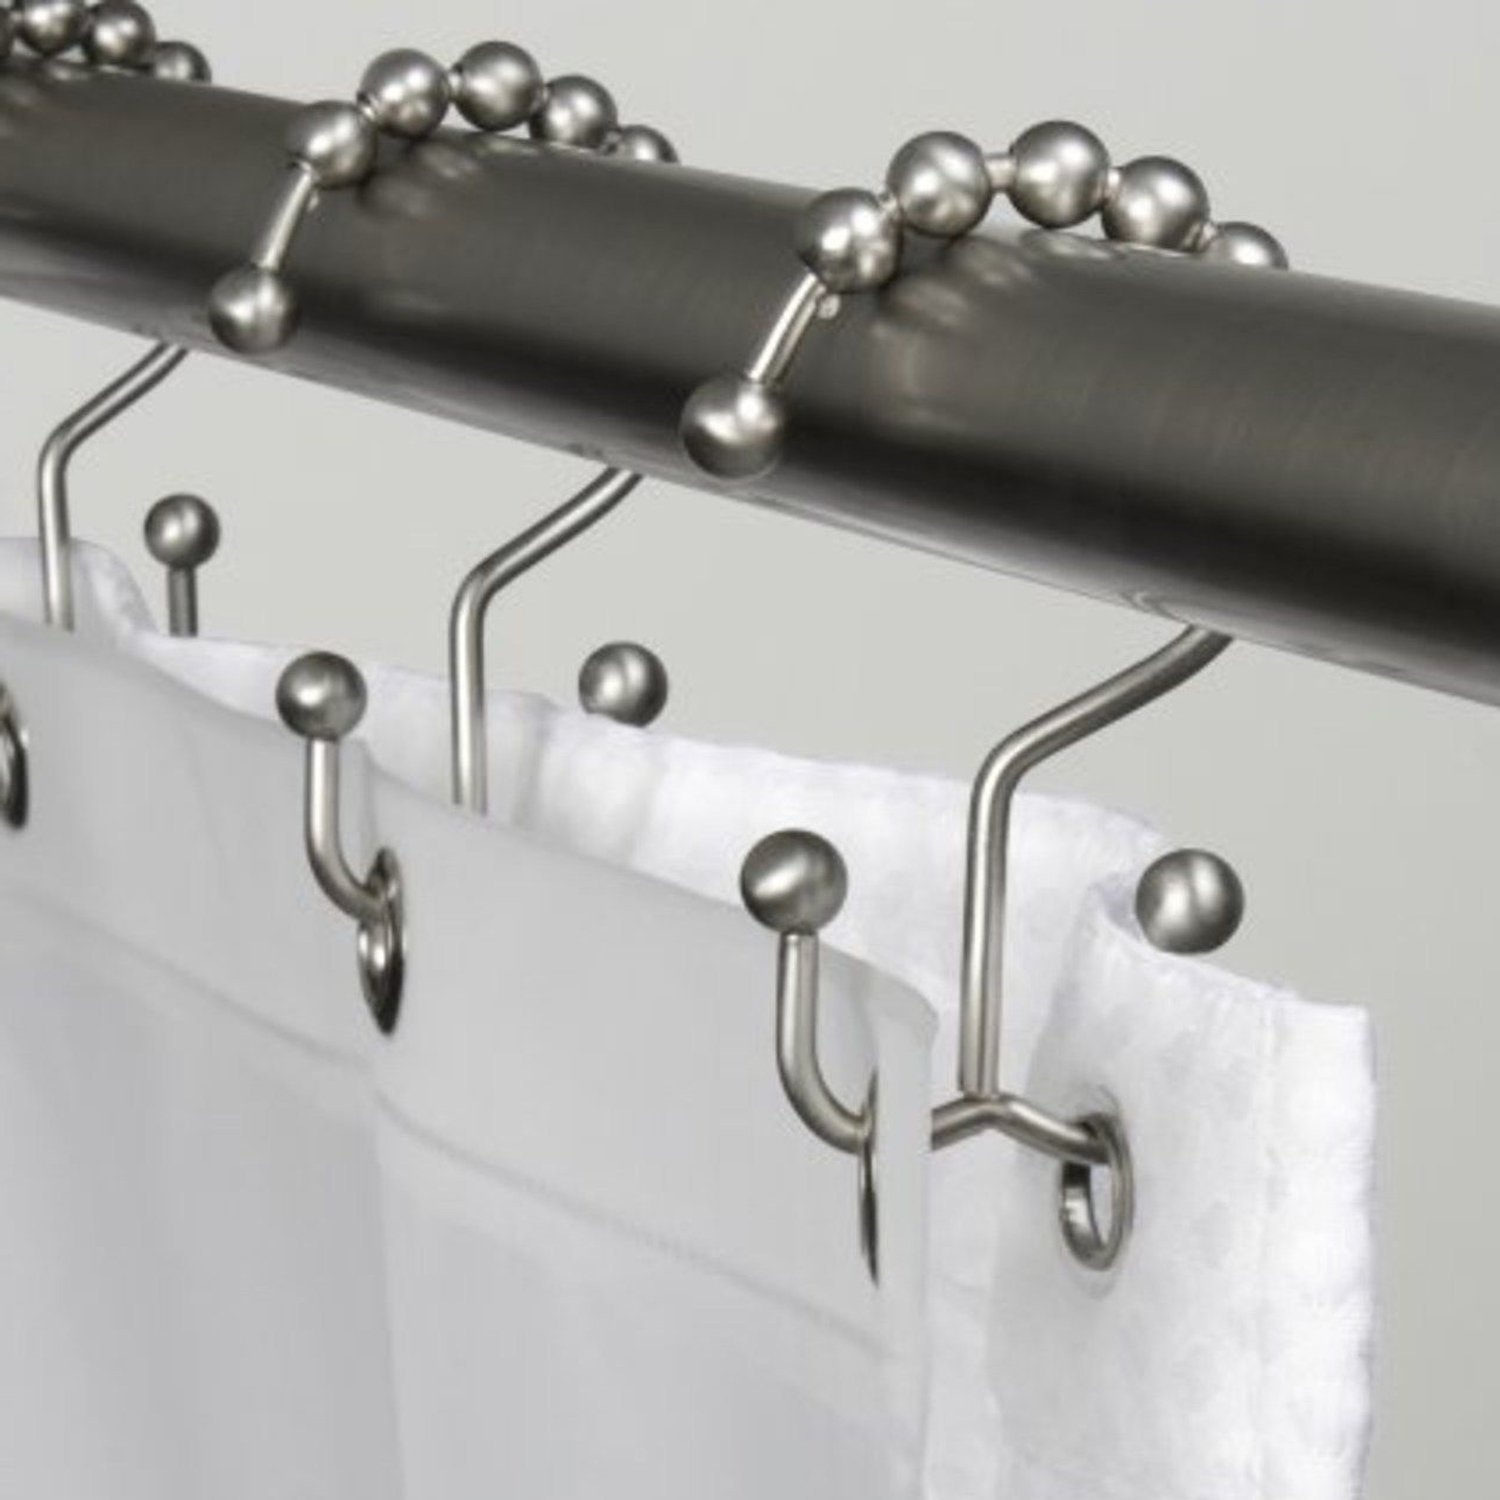 Brushed Nickel Aomidi Double Glide Roller Shower Curtain Hooks Rings 100 Stainless Steel Polished Chrome Set Of 12 Rings Brushed Nickel